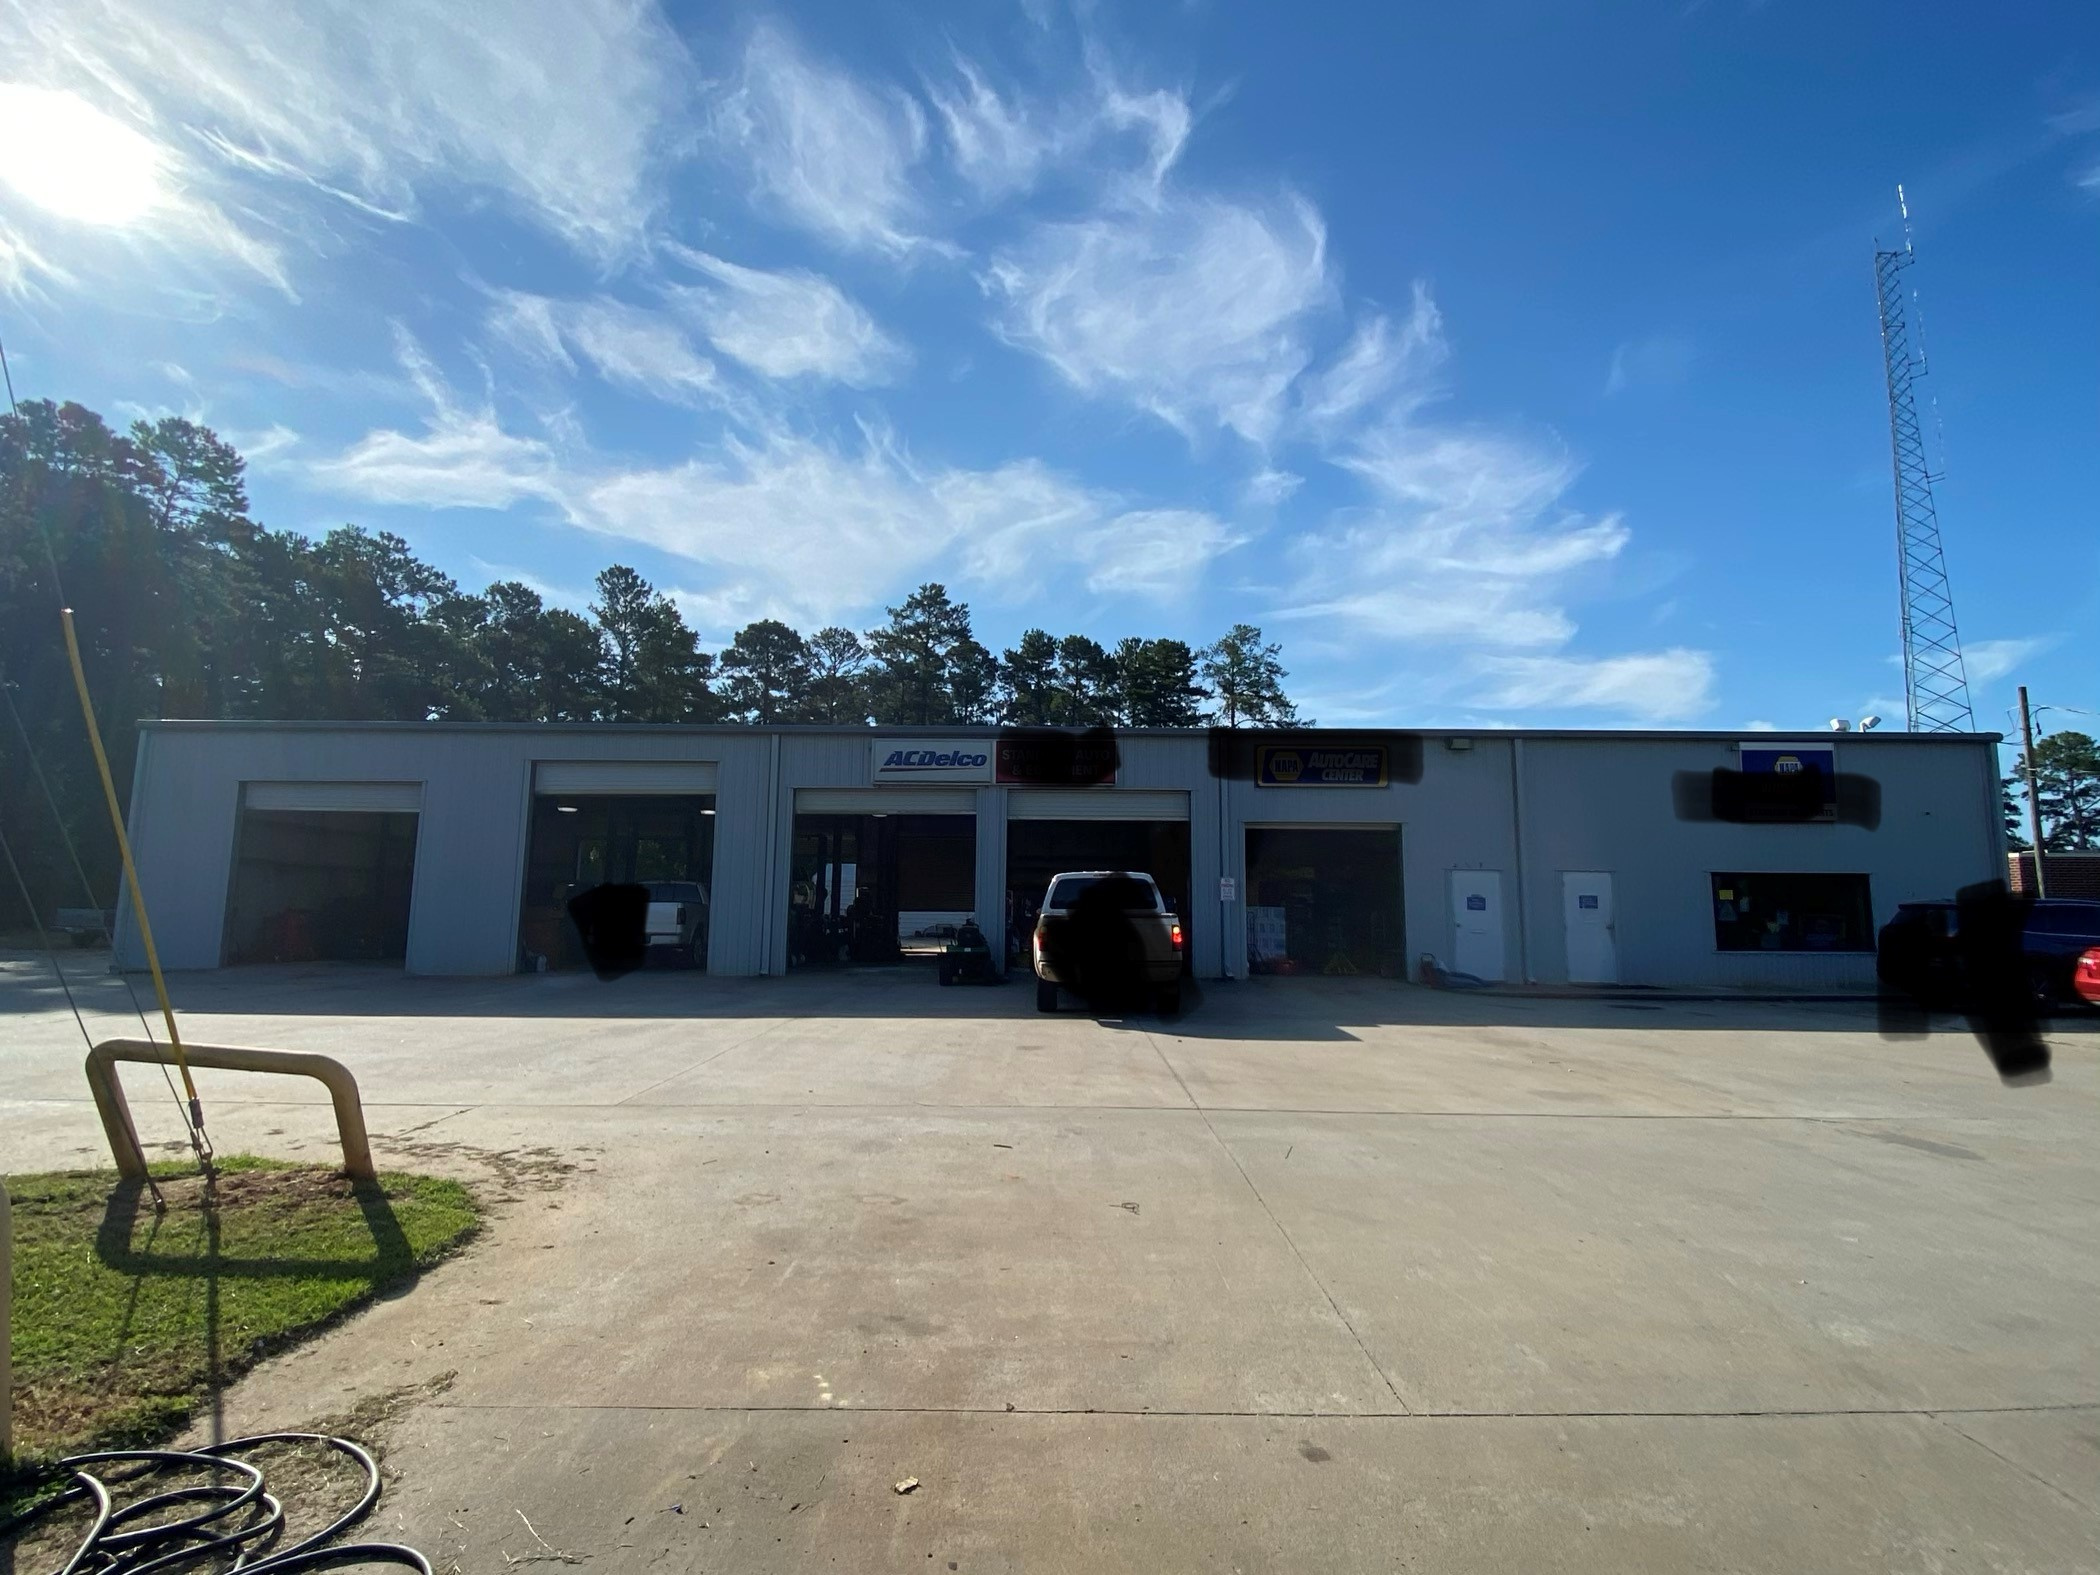 NAPA/Auto Repair between Athens and Augusta GA with Real Estate